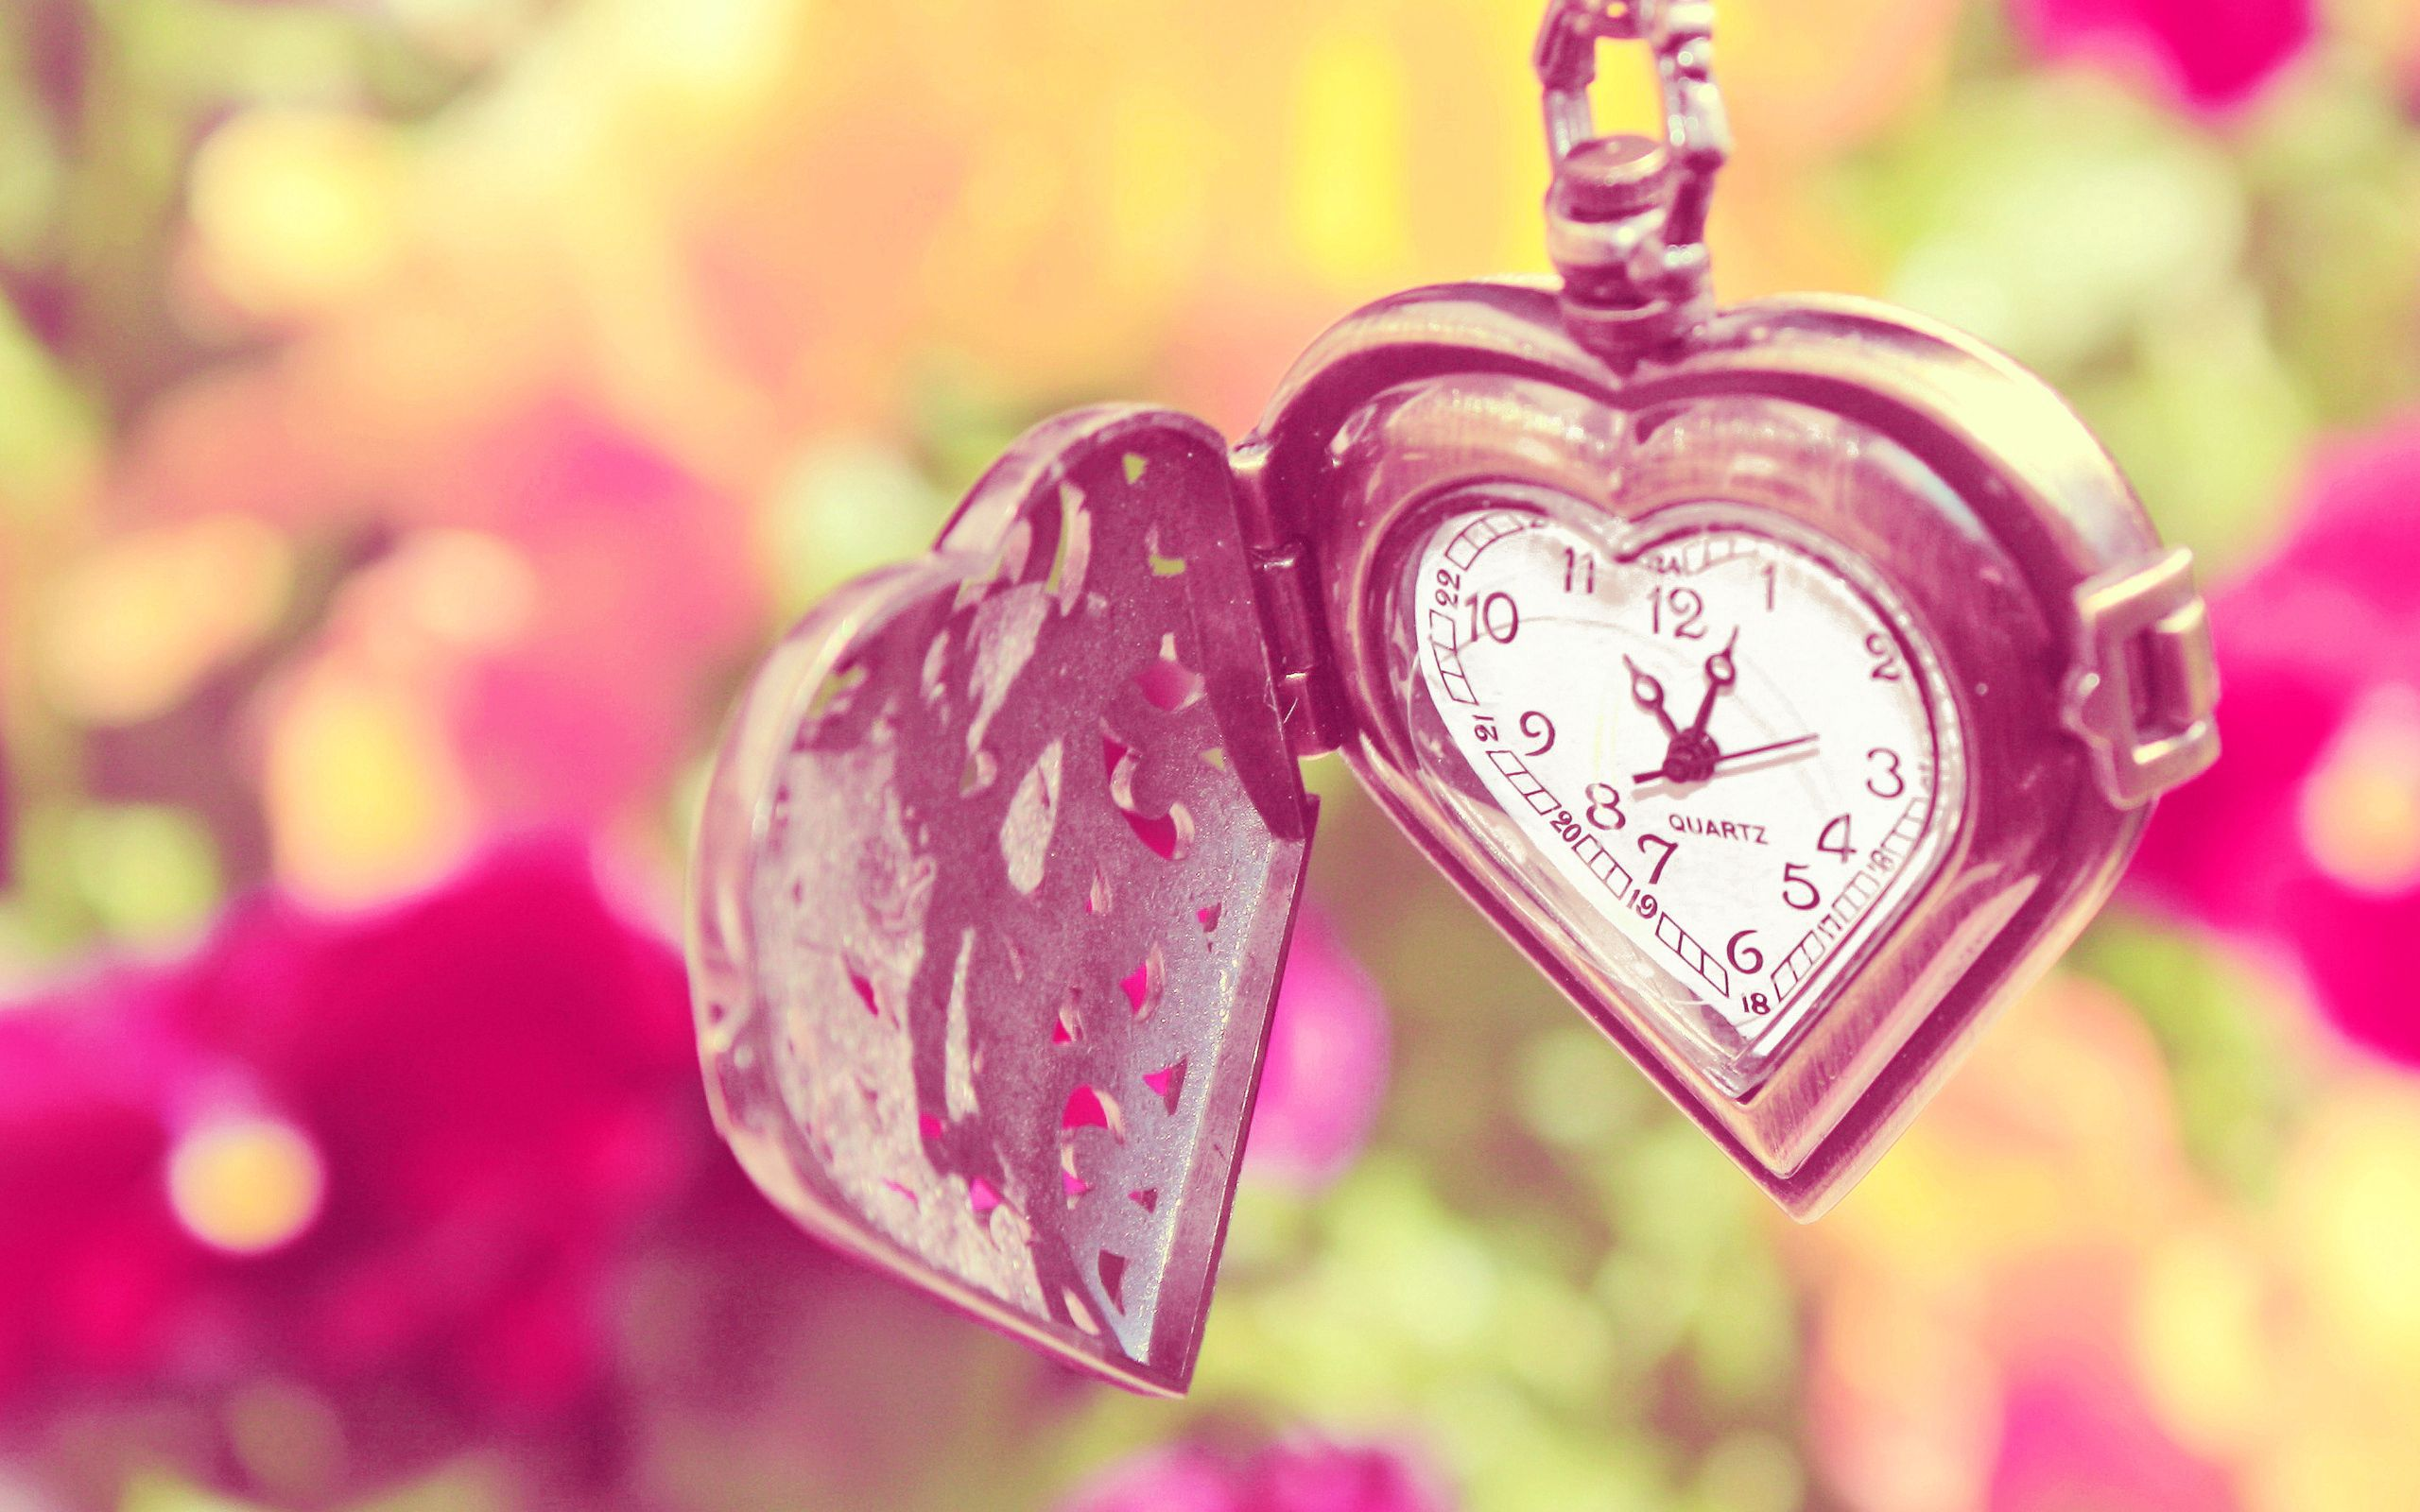 128988 download wallpaper Macro, Summer, Chain, Heart, Flowers, Clock screensavers and pictures for free